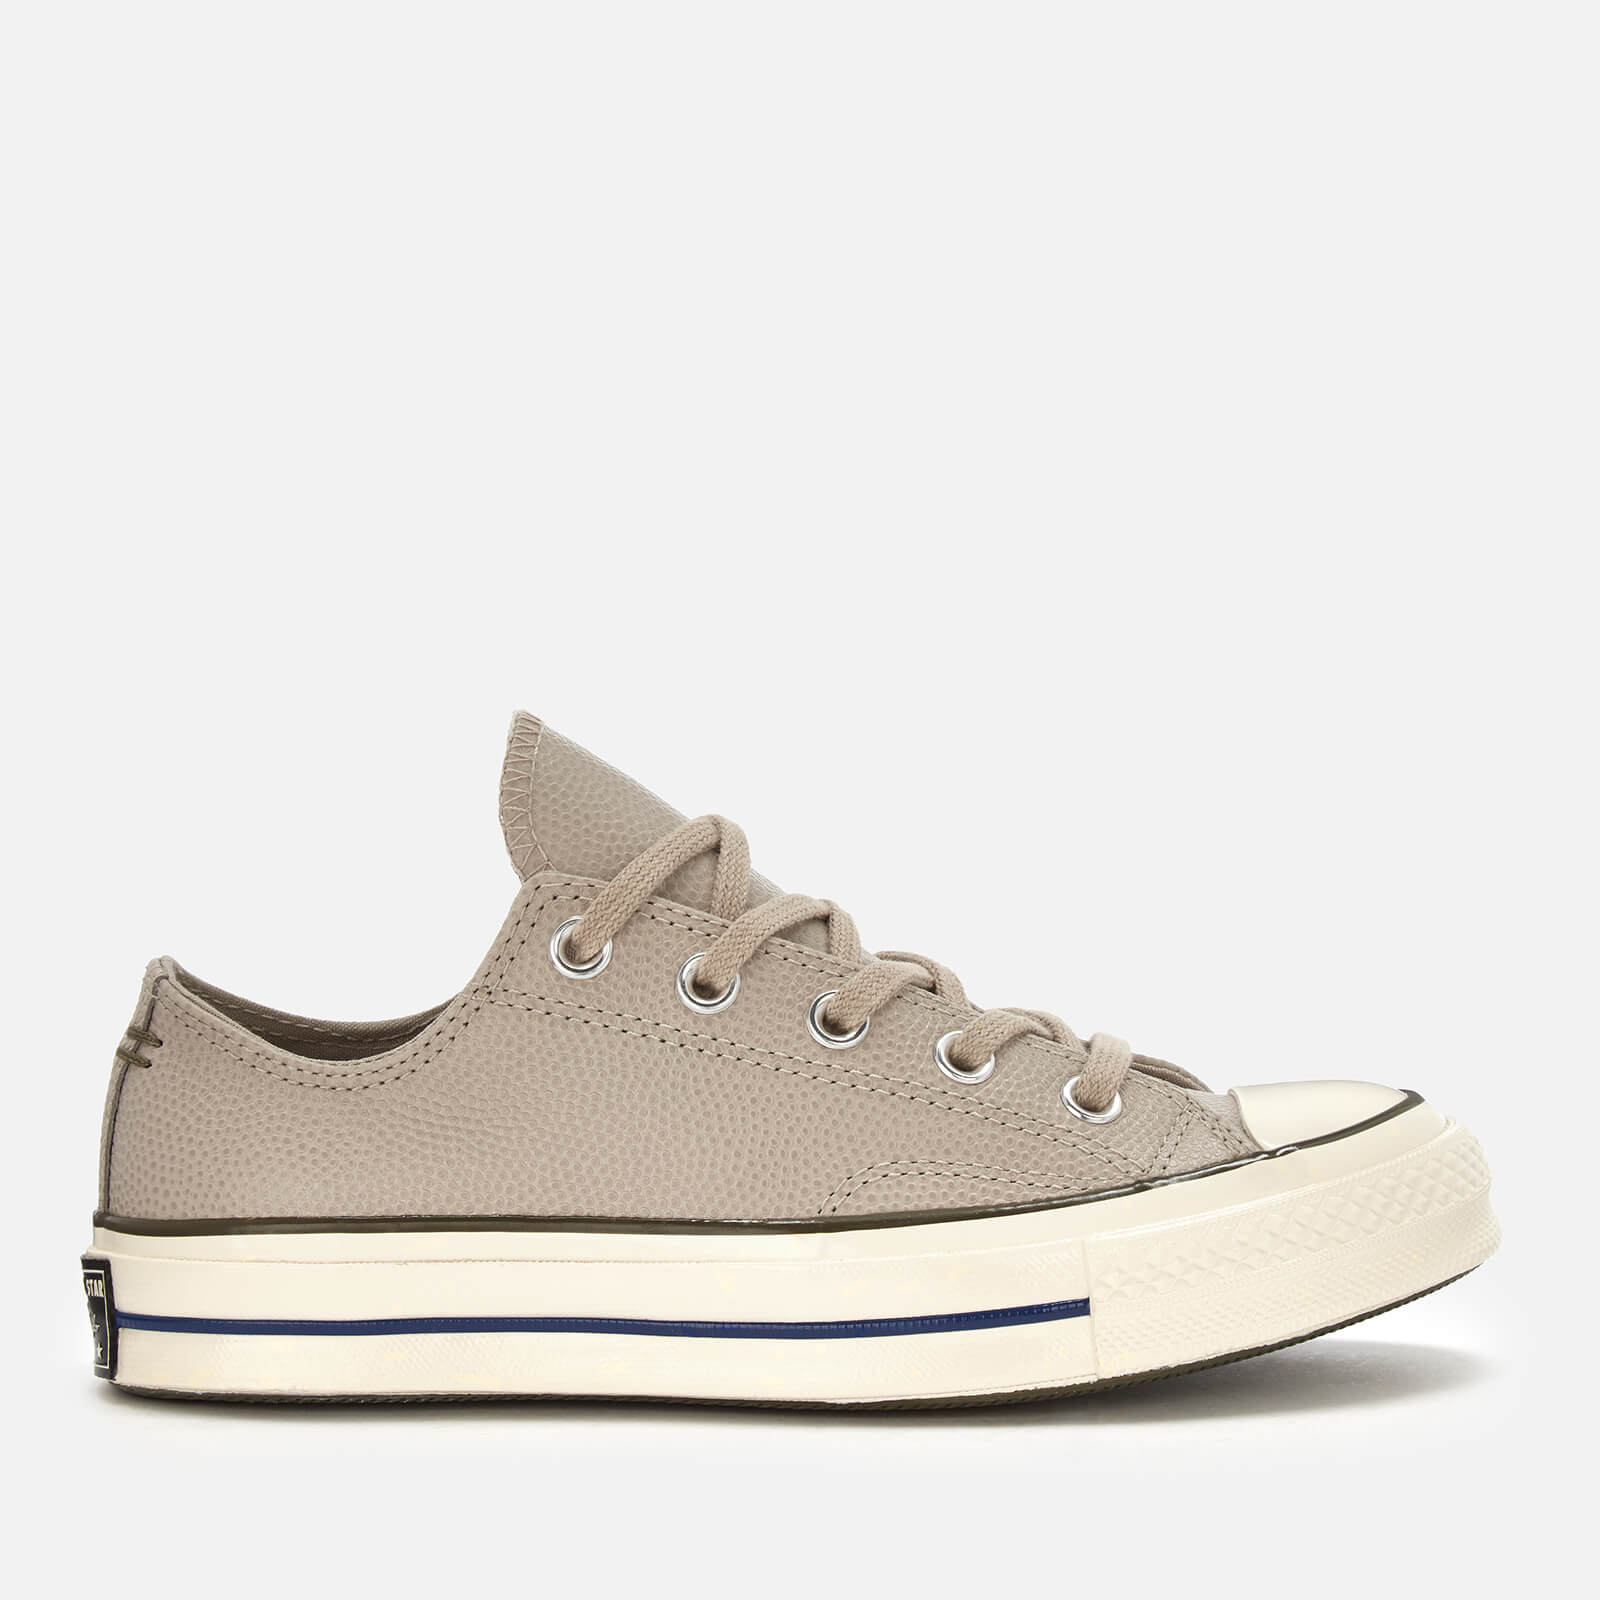 69aaa16dfc3e Converse Women s Chuck Taylor All Star 70 Ox Trainers - Papyrus Field  Surplus Egret - Free UK Delivery over £50